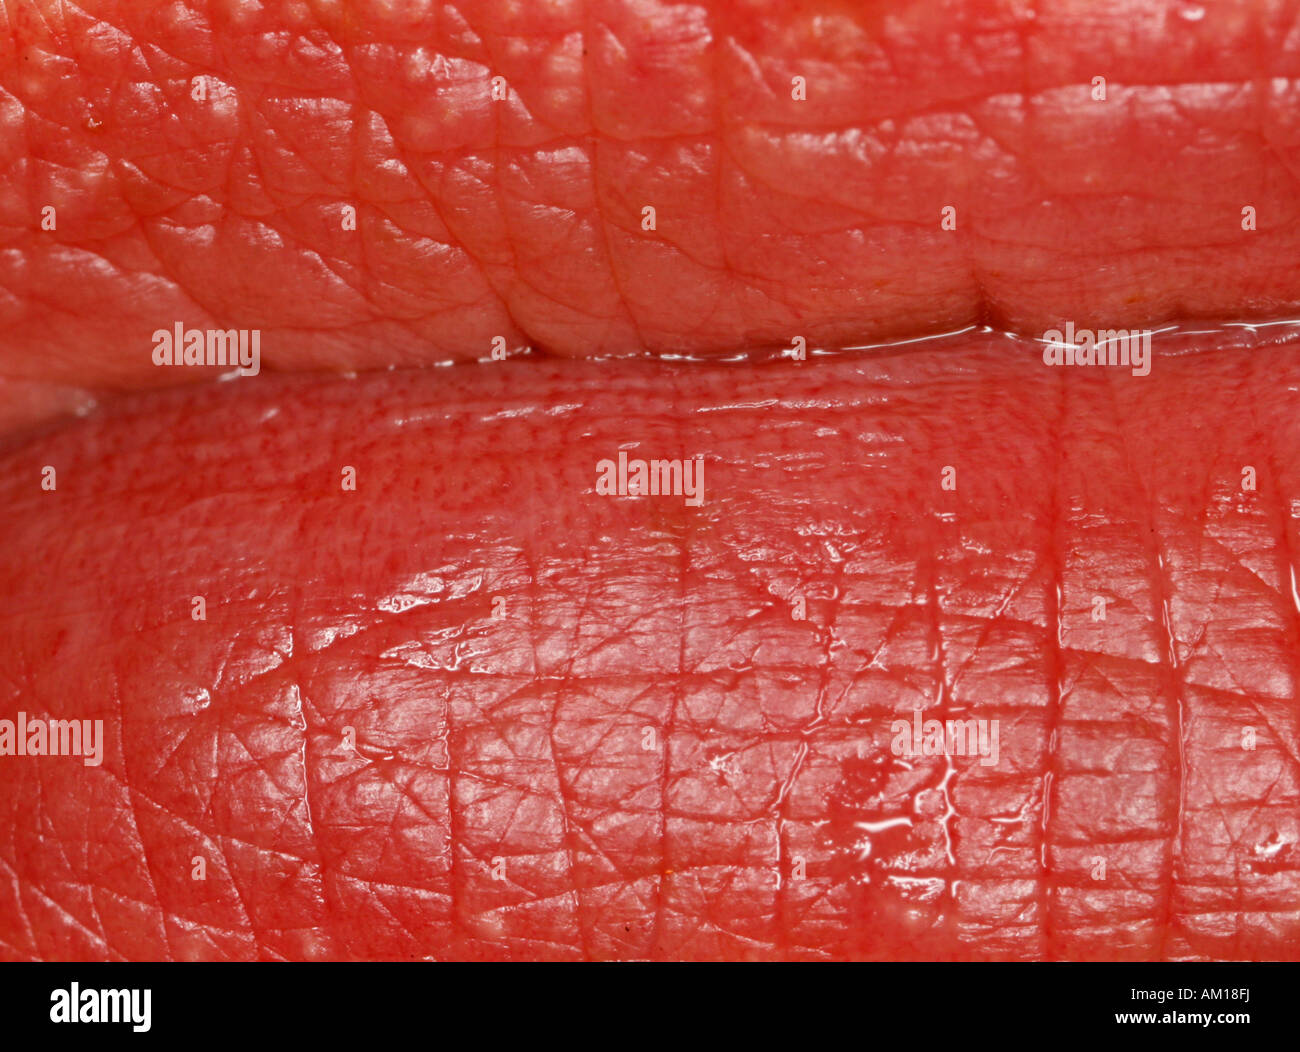 Extreme close-up de labios humanos Imagen De Stock